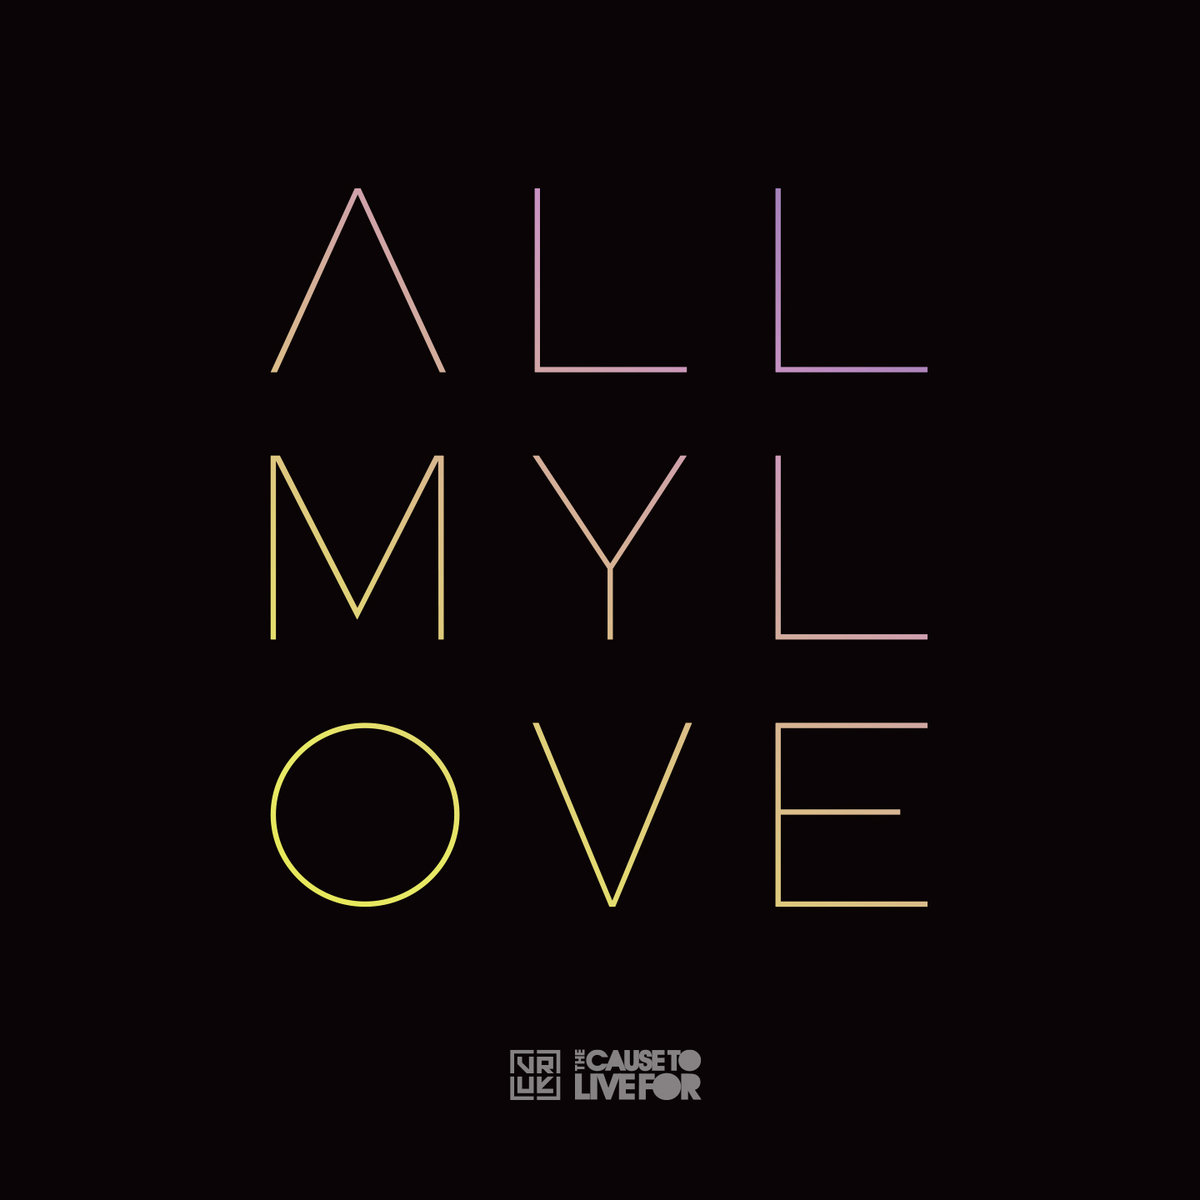 All My Love cover.jpg